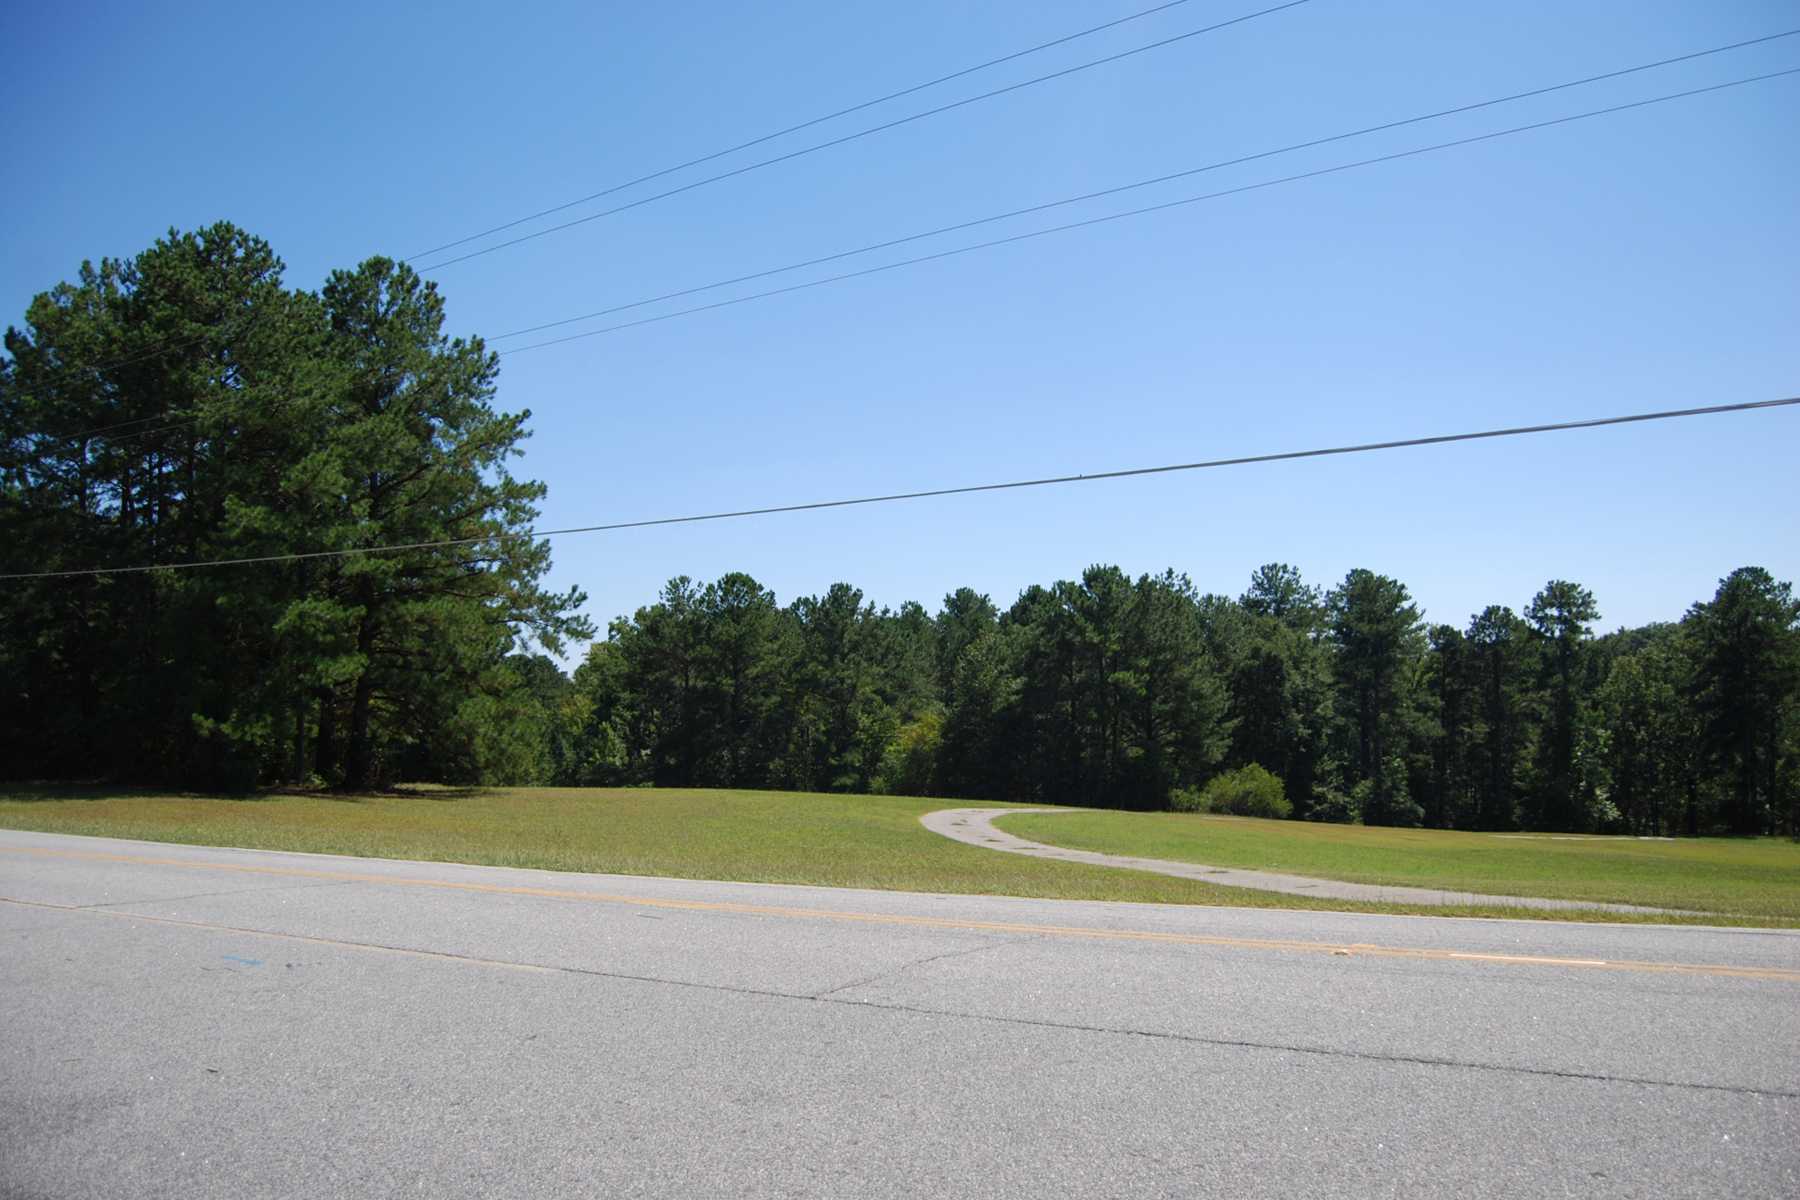 Terreno por un Venta en Prime Location - 40.638 Acres Across From Piedmont Fayette Hospital 0 Highway 54 W Fayetteville, Georgia 30215 Estados Unidos